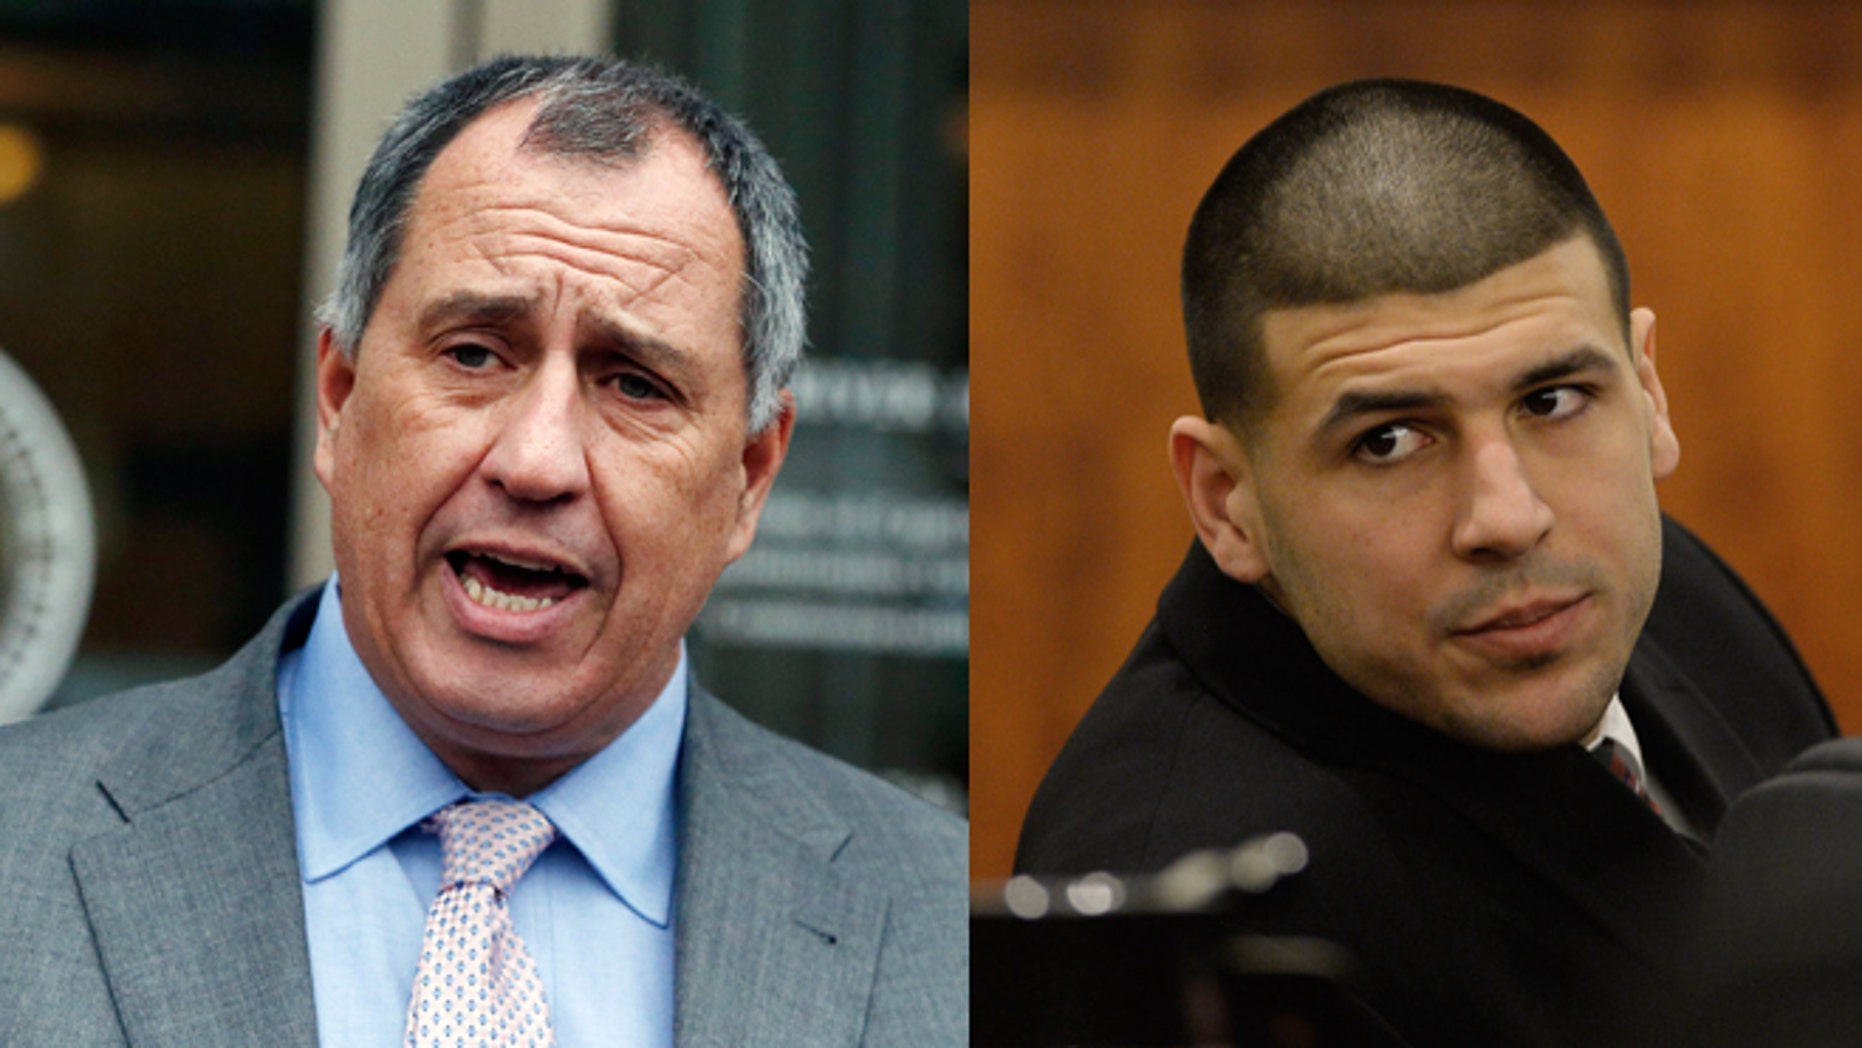 Left: Bristol County acting attorny general, Thomas Quinn. Right: Aaron Hernandez. (Photos: Associated Press)